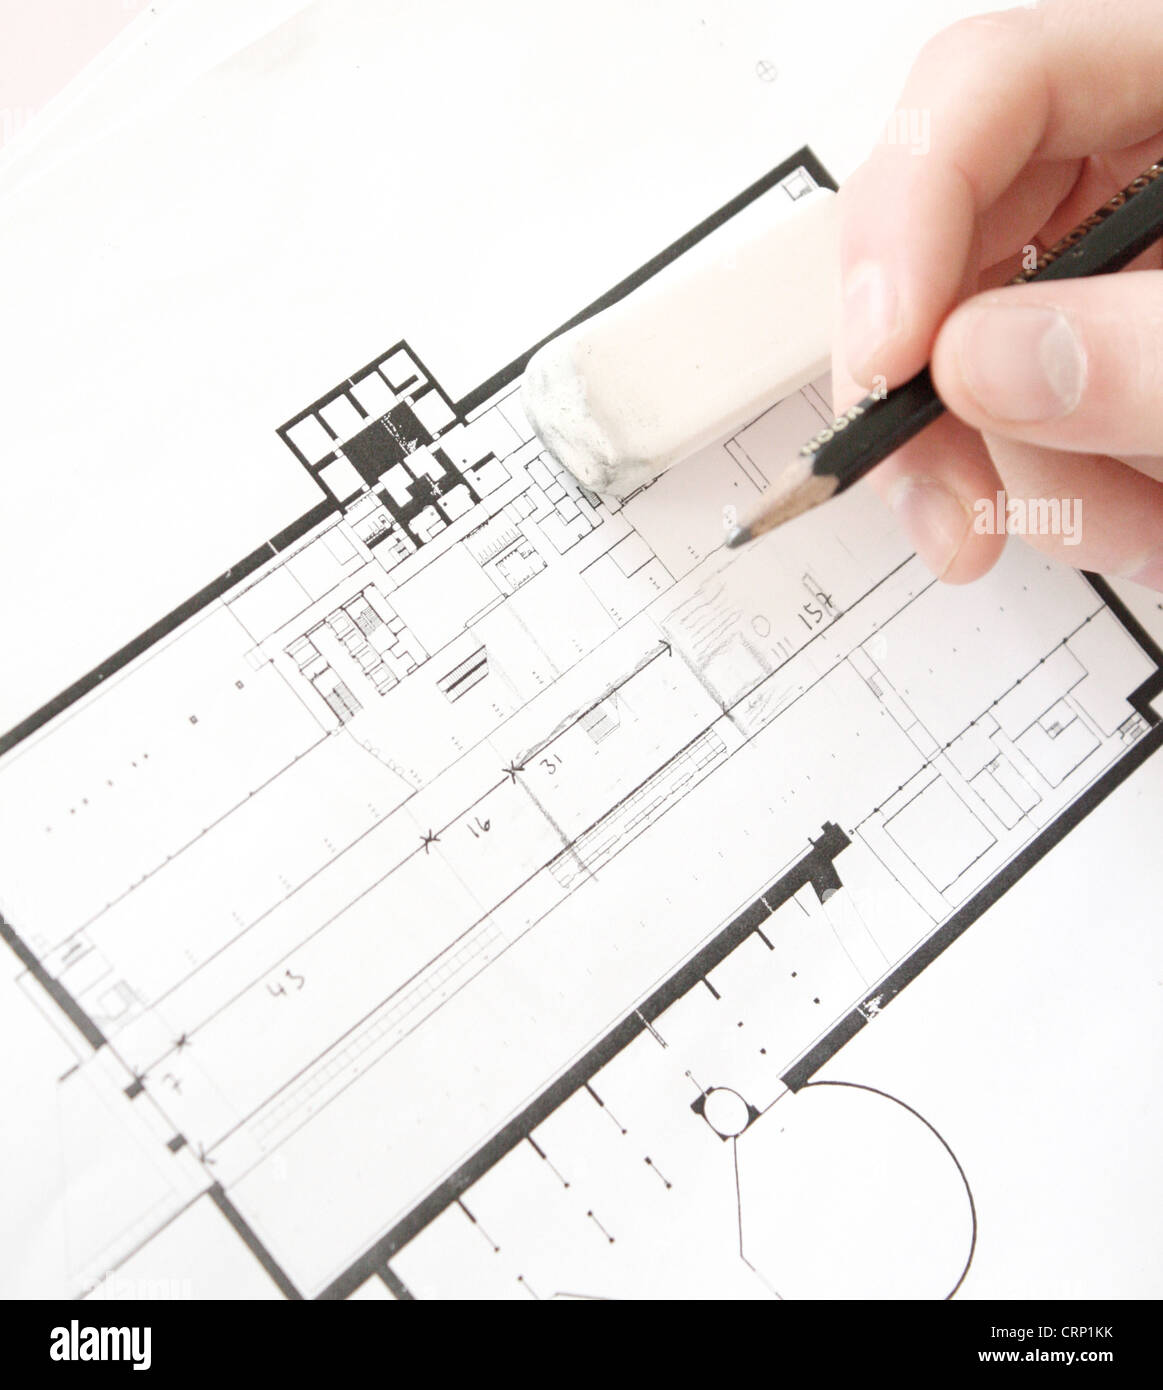 Architectural plans - Stock Image